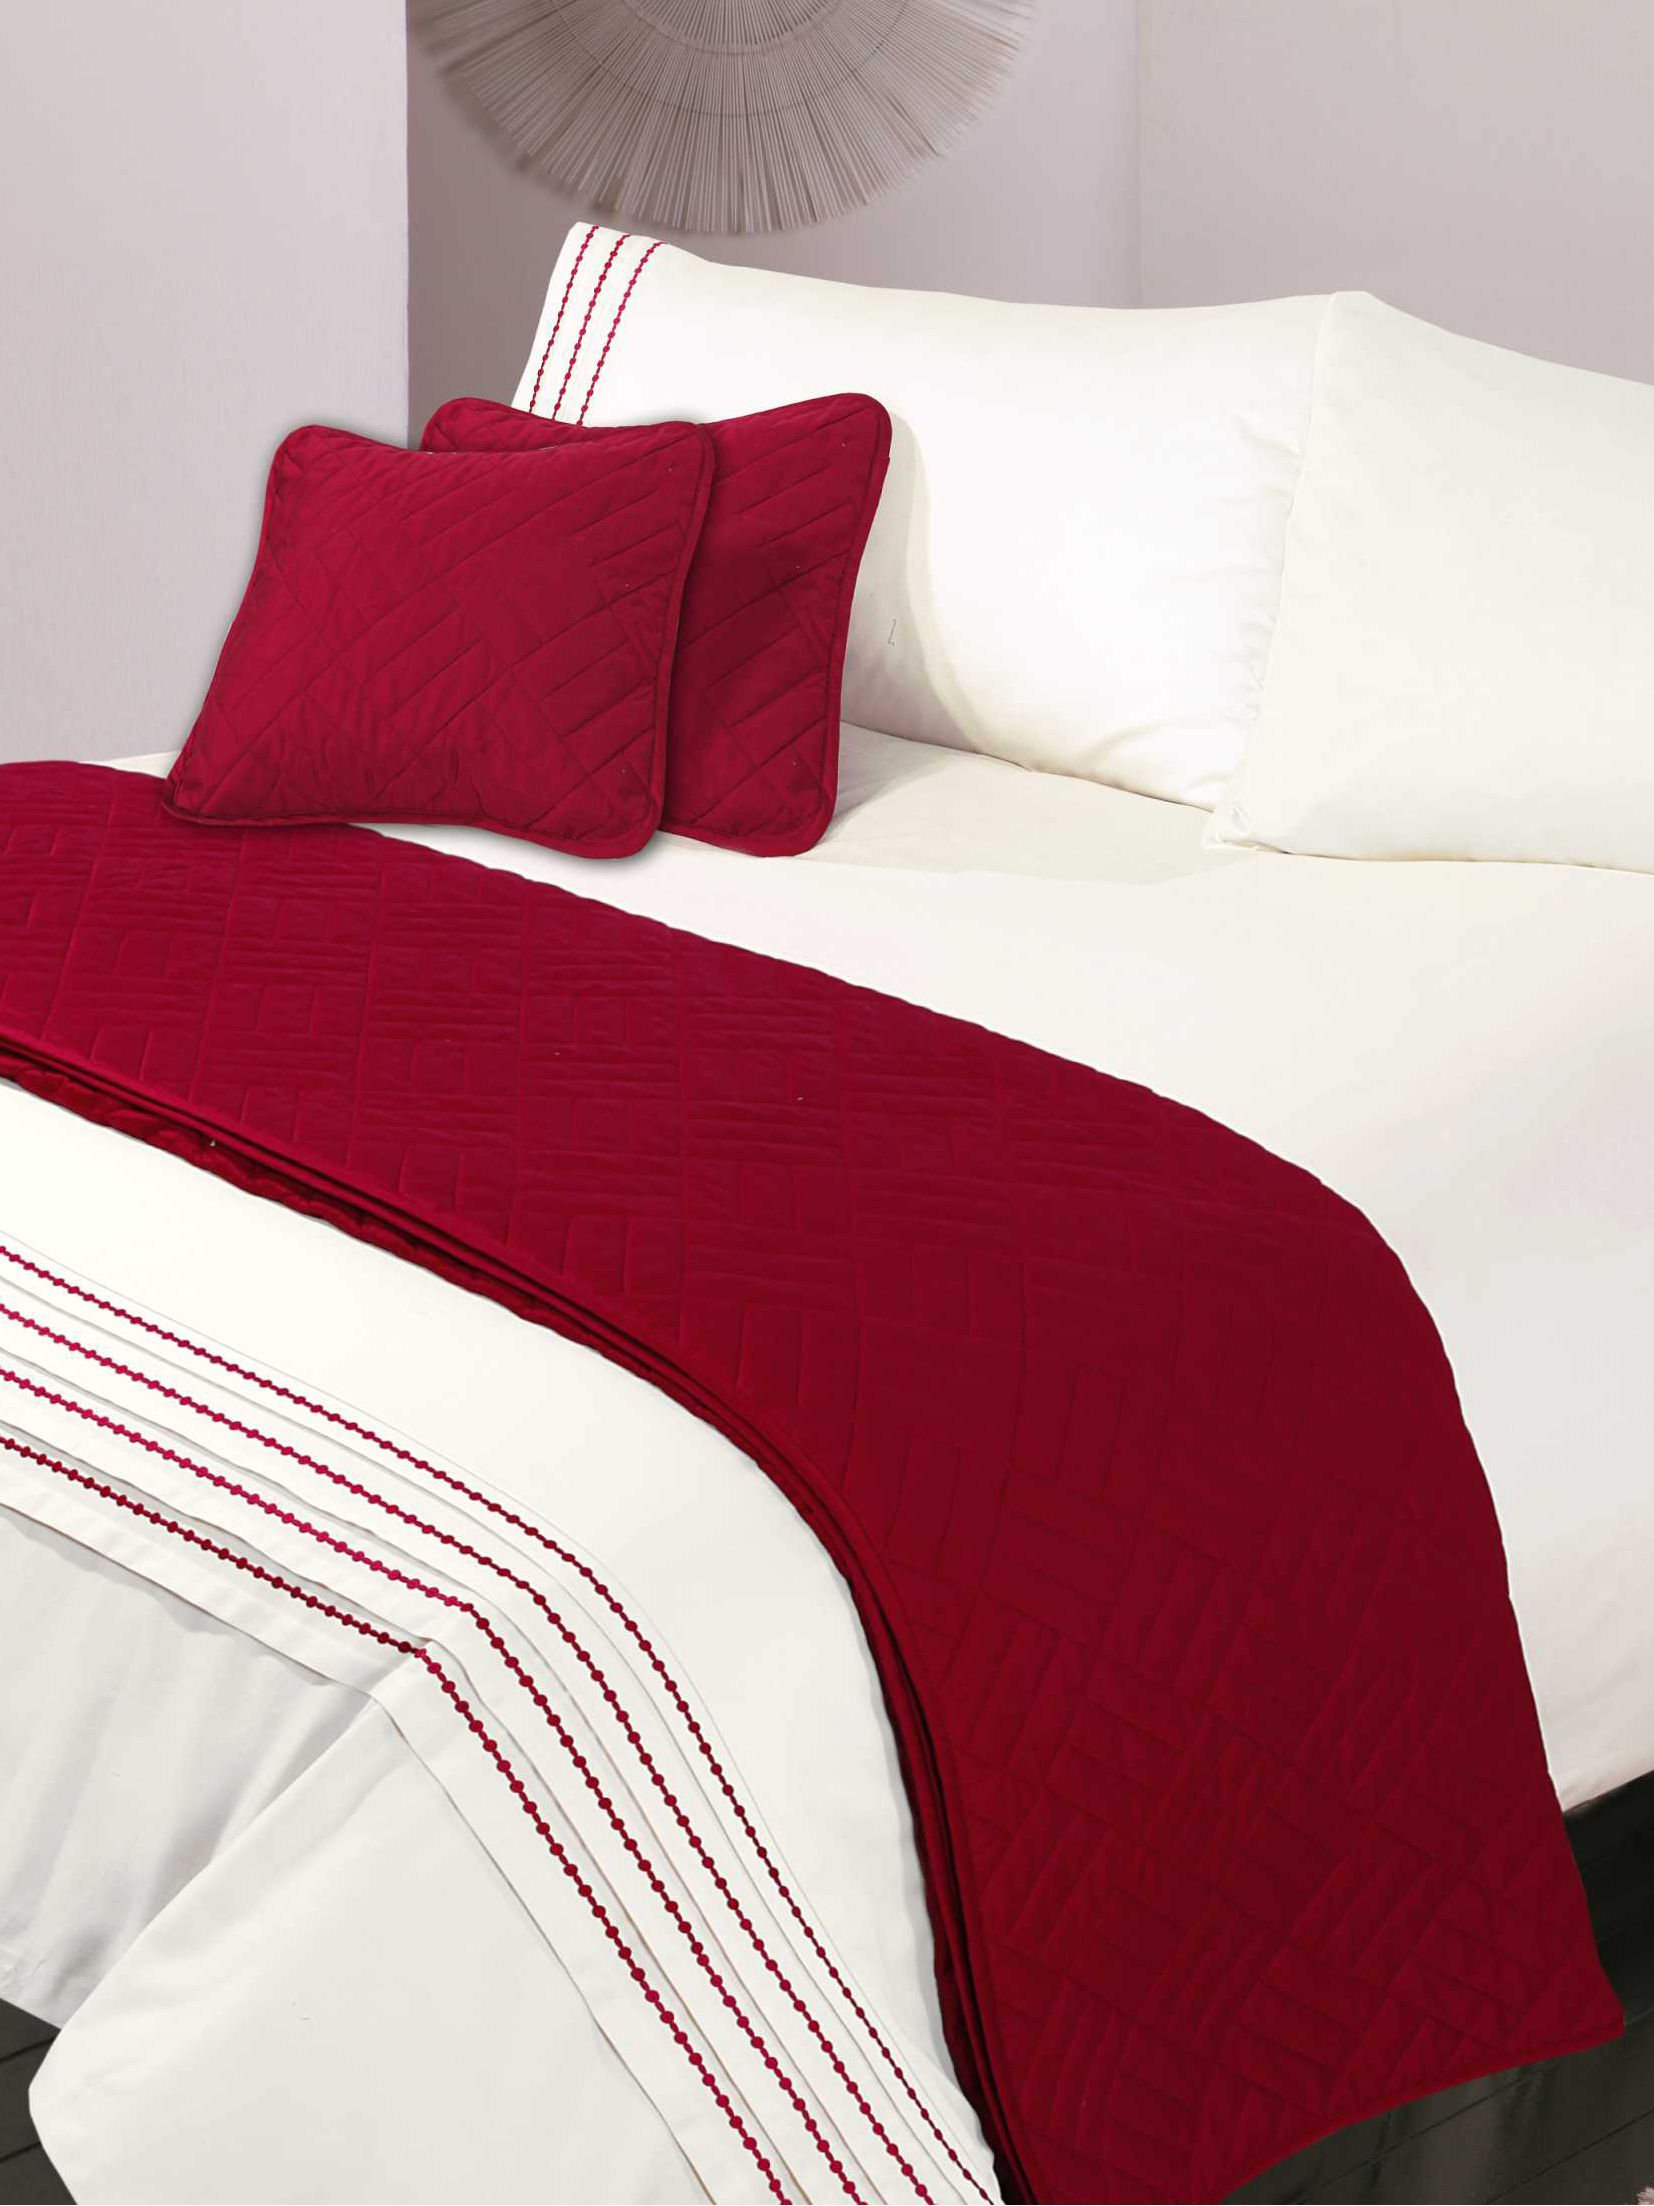 Pearl Embroidery superking duvet cover set cherry